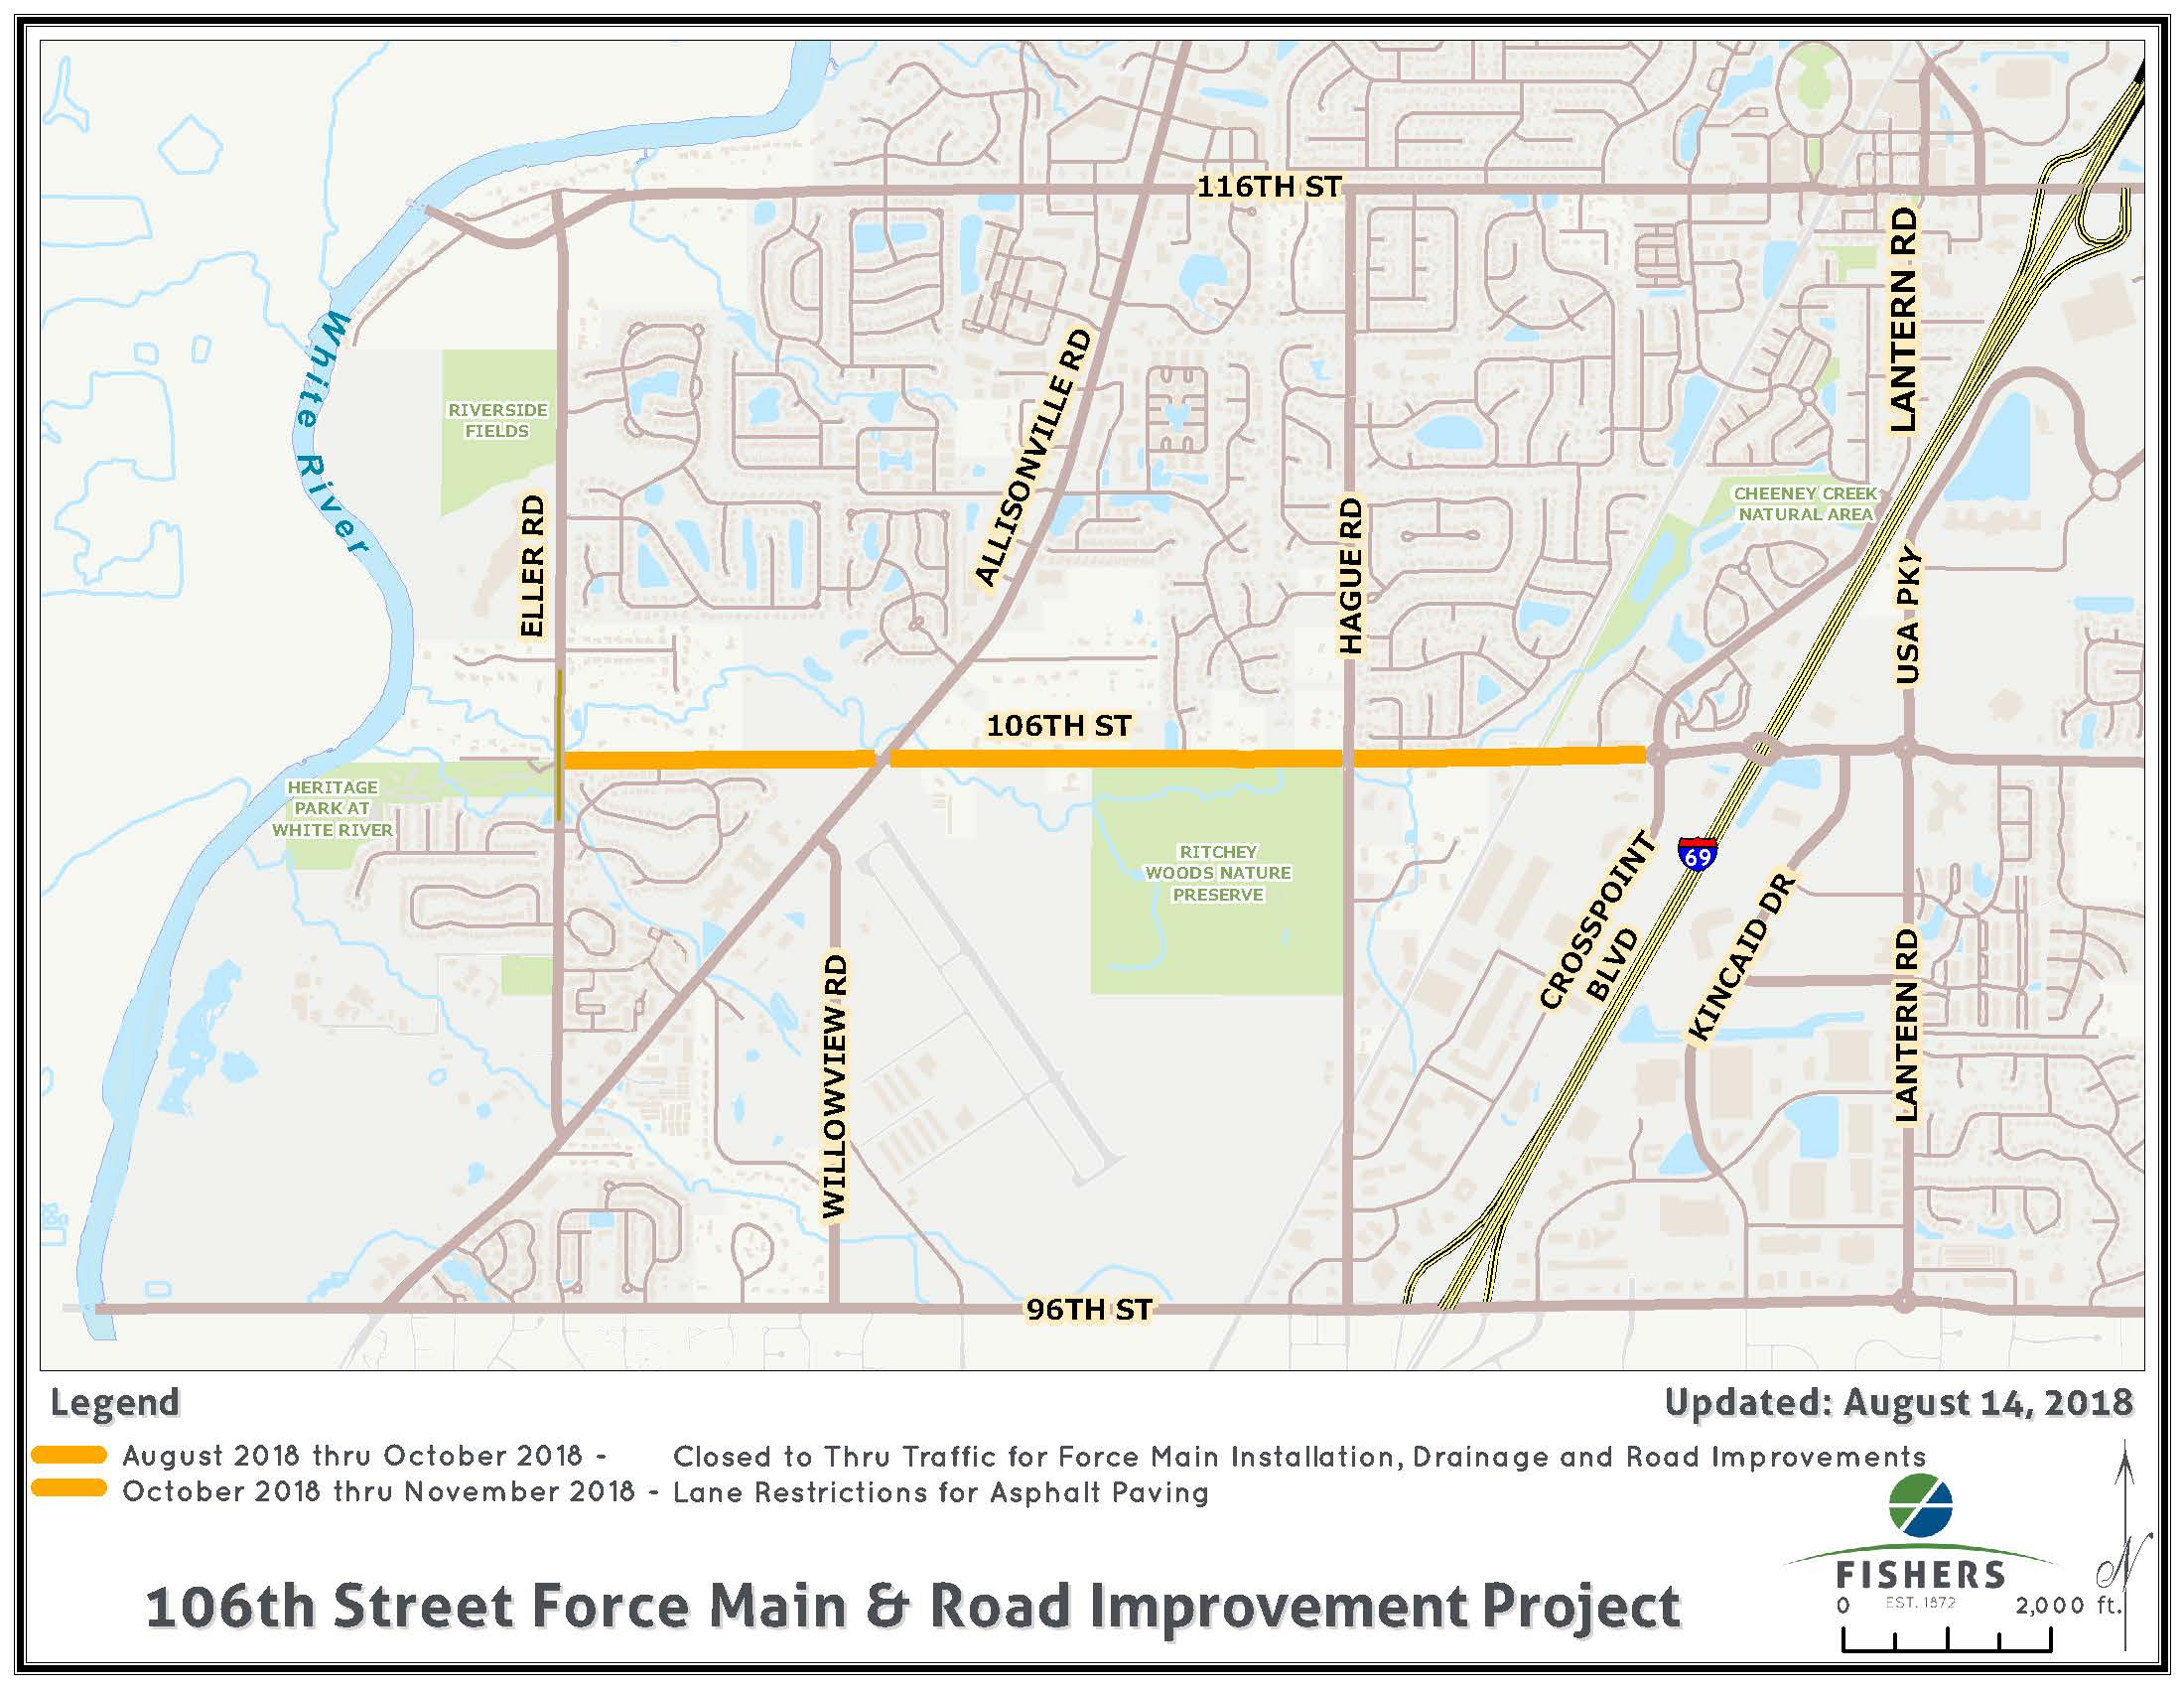 106th St Force Main and Road Improvement Detour_8-14-2018 (002)